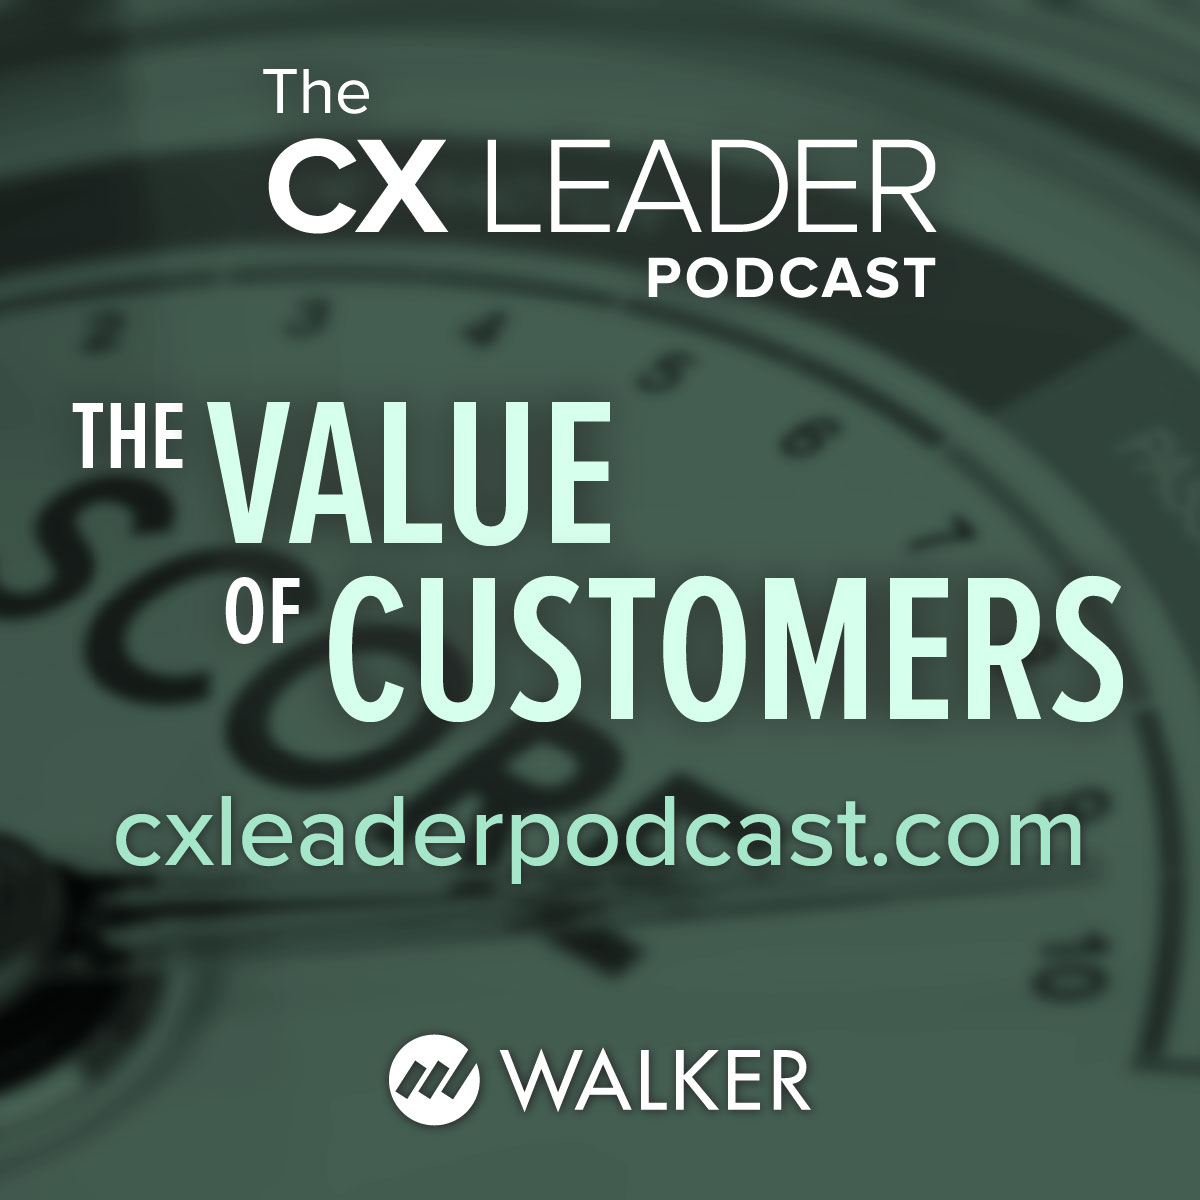 The Value of Customers, part 2